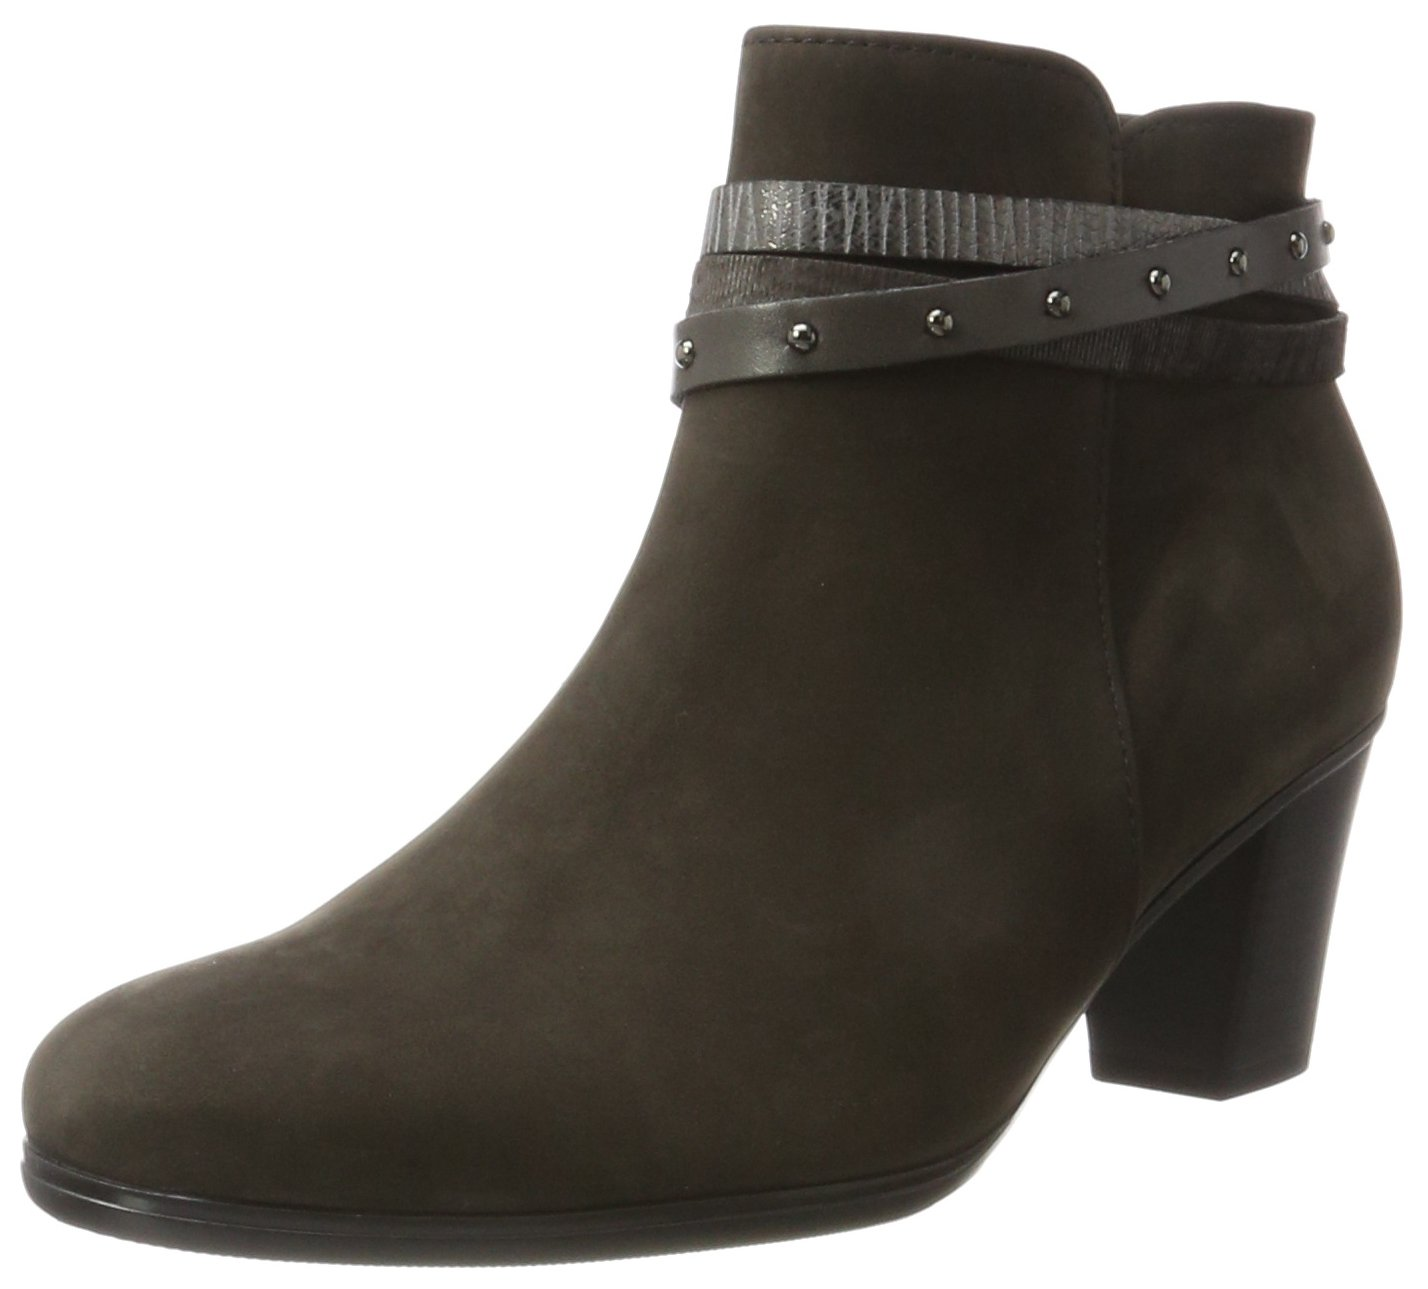 Gabor Shoes Gabor B01MYLWWSJ Basic, Bottes Femme Gris Gris (19 Anthrazit Anthrazit Kombi) 47894d9 - reprogrammed.space